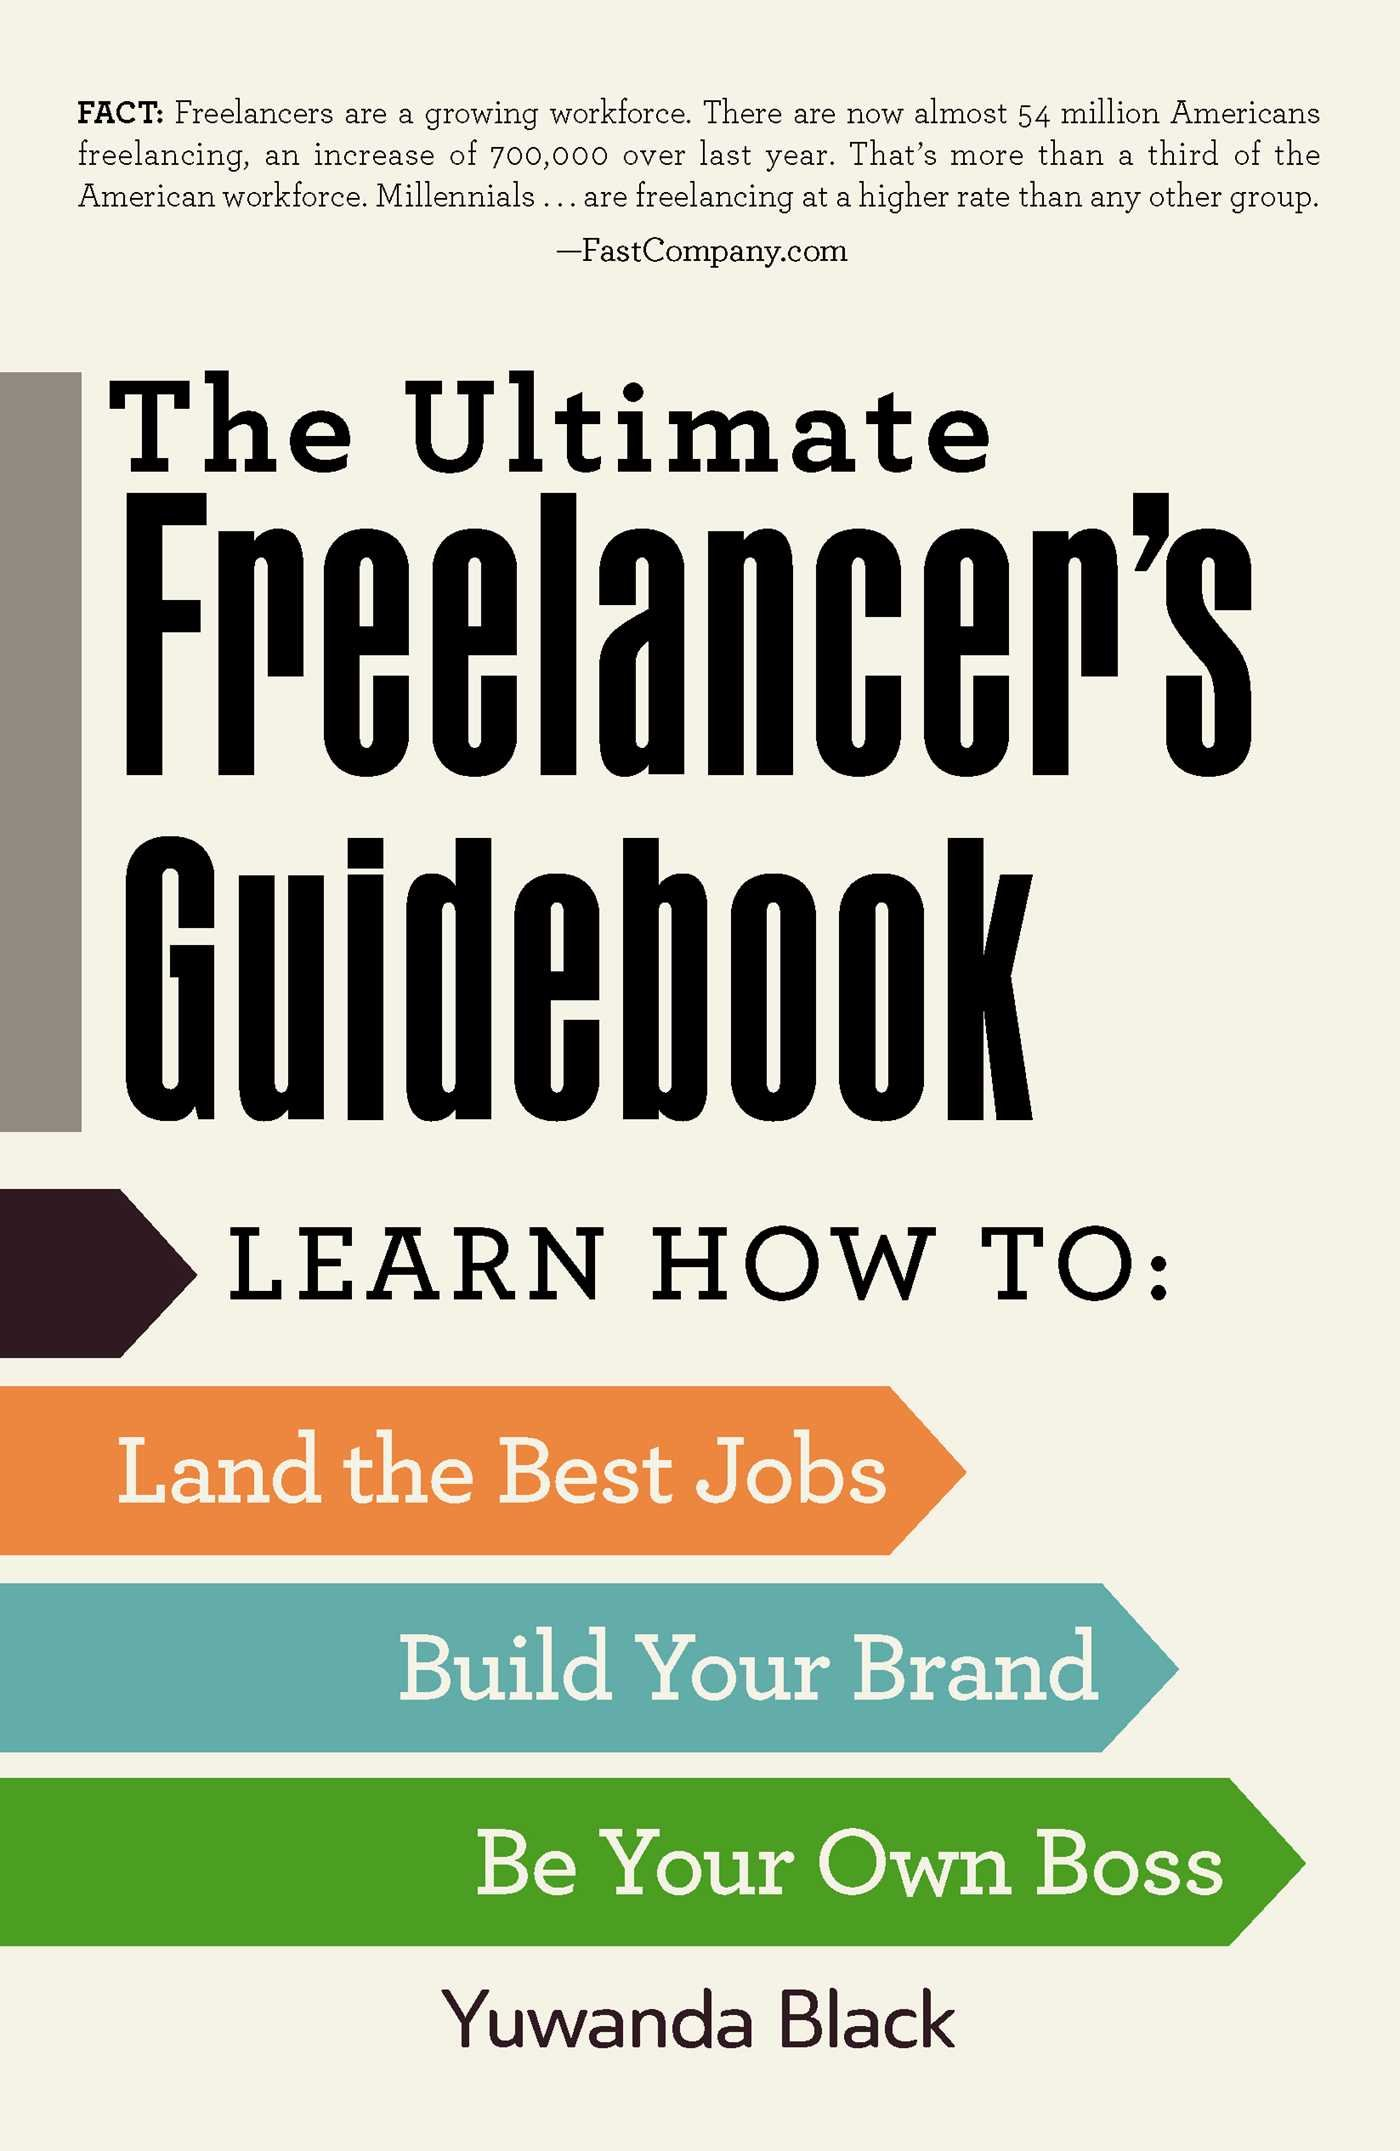 amazon com the ultimate lancer s guidebook learn how to land amazon com the ultimate lancer s guidebook learn how to land the best jobs build your brand and be your own boss 0045079596788 yuwanda black